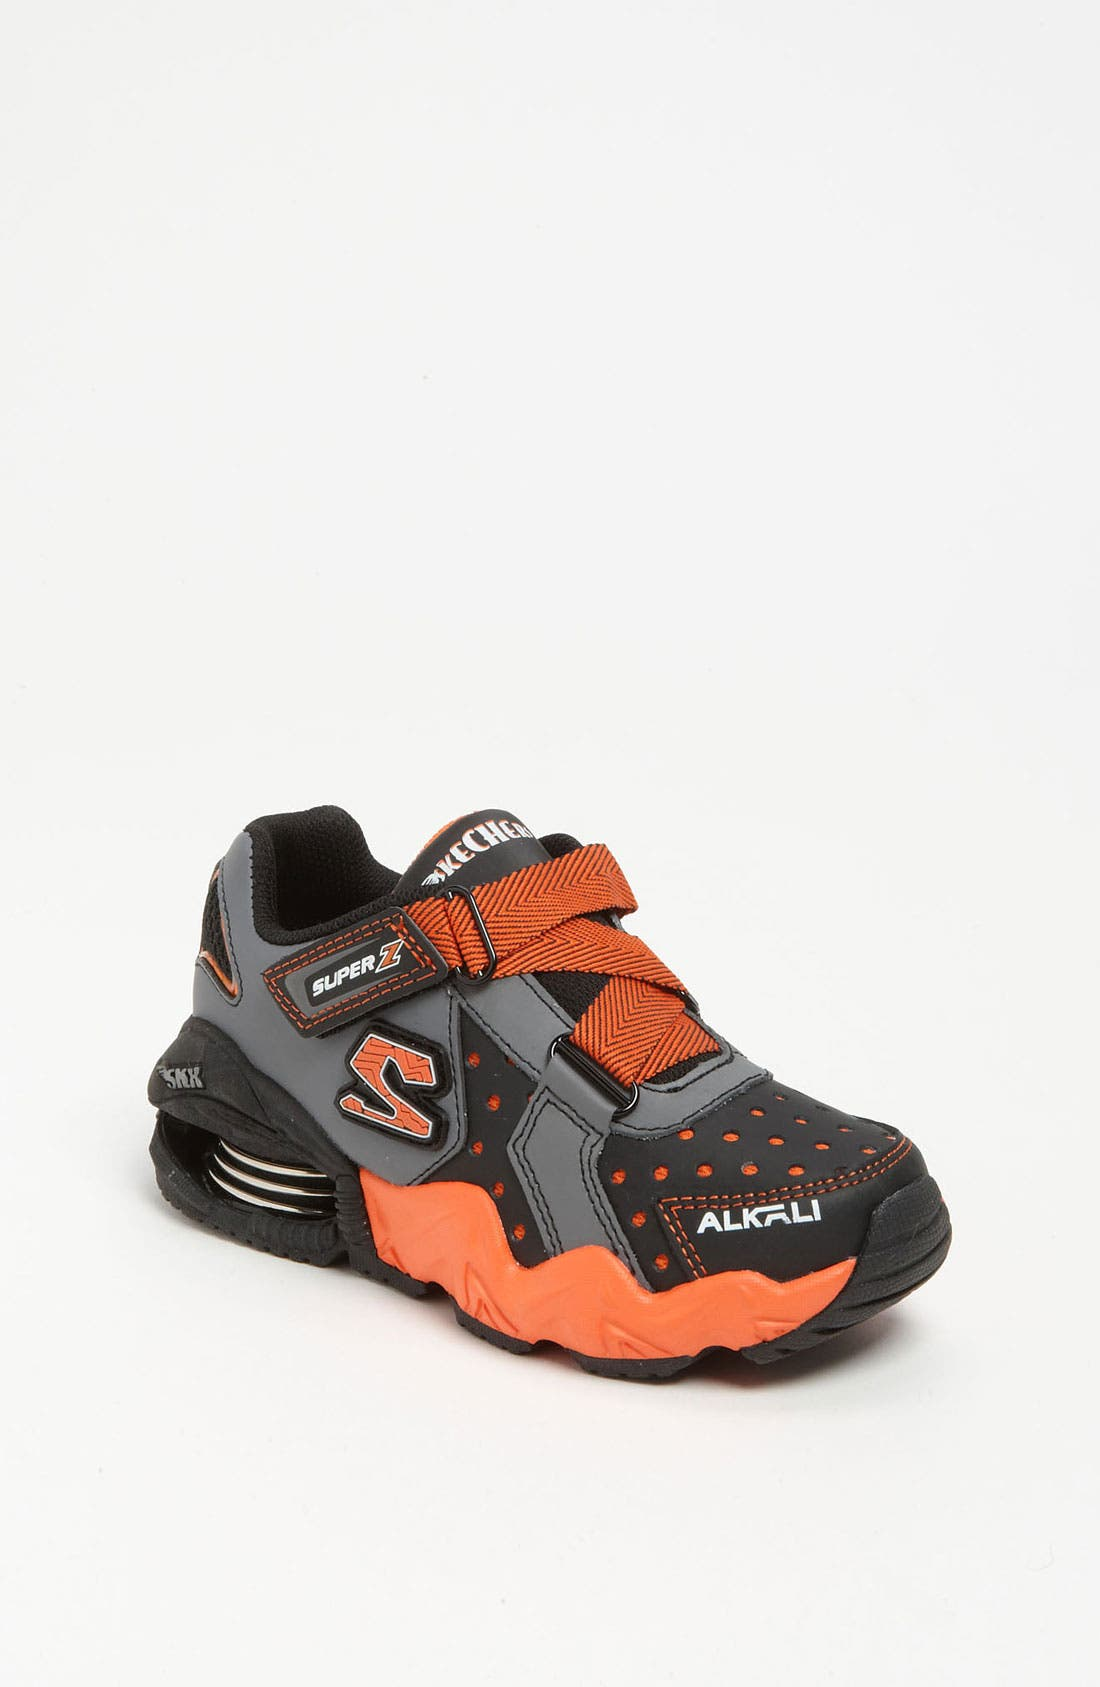 Alternate Image 1 Selected - SKECHERS 'Alkali' Sneaker (Toddler, Little Kid & Big Kid)